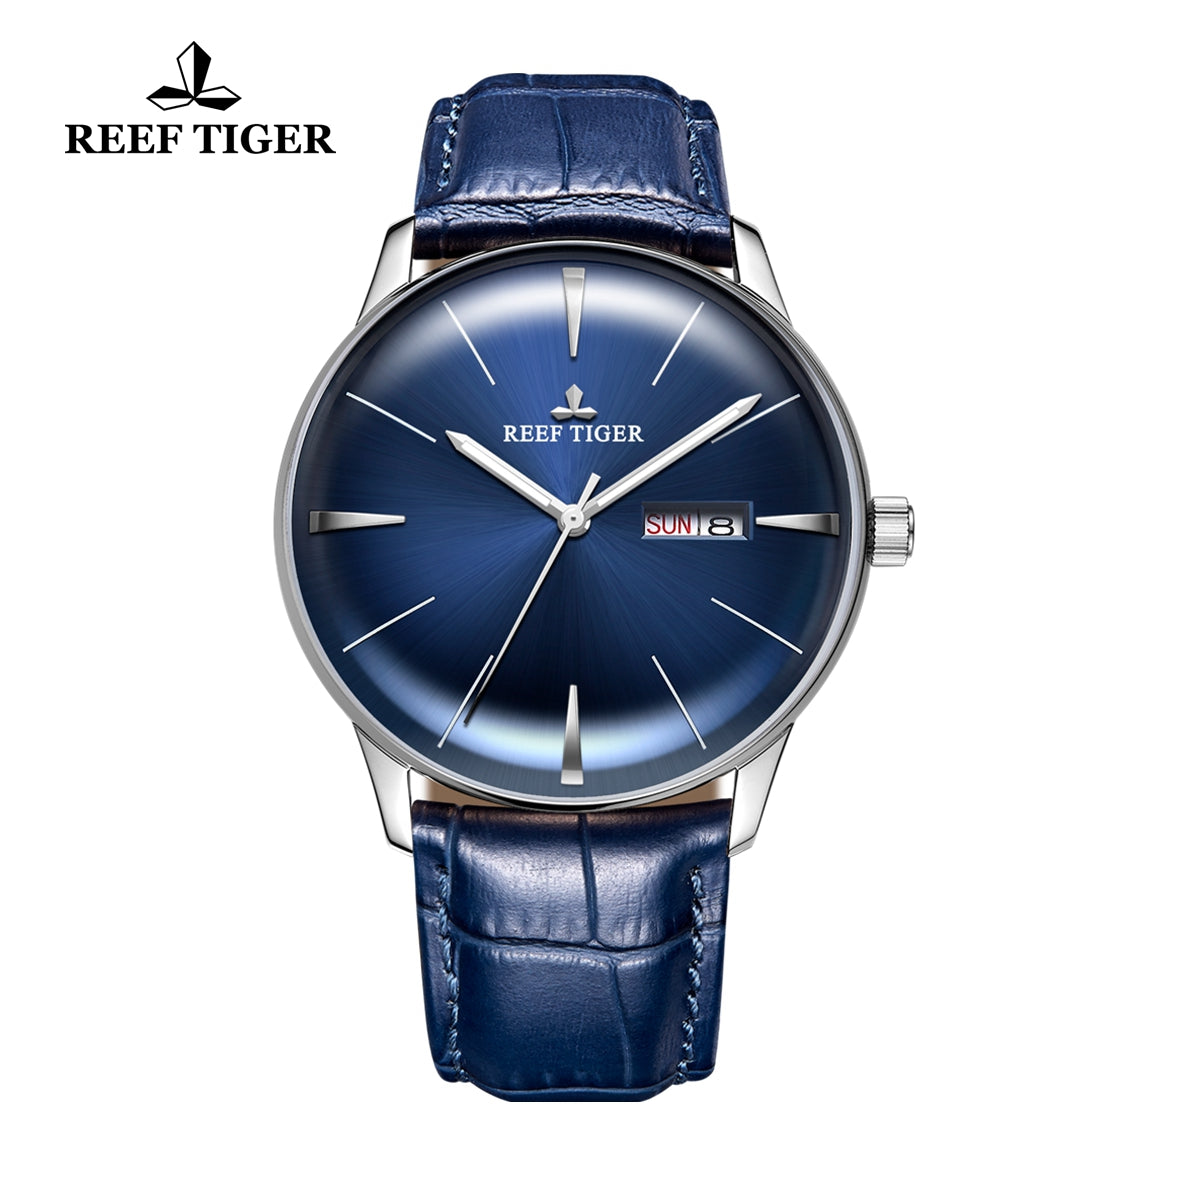 Reef Tiger Classic Heritor Fashion Business Mens Steel Leather Strap Blue Dial Watch RGA8238